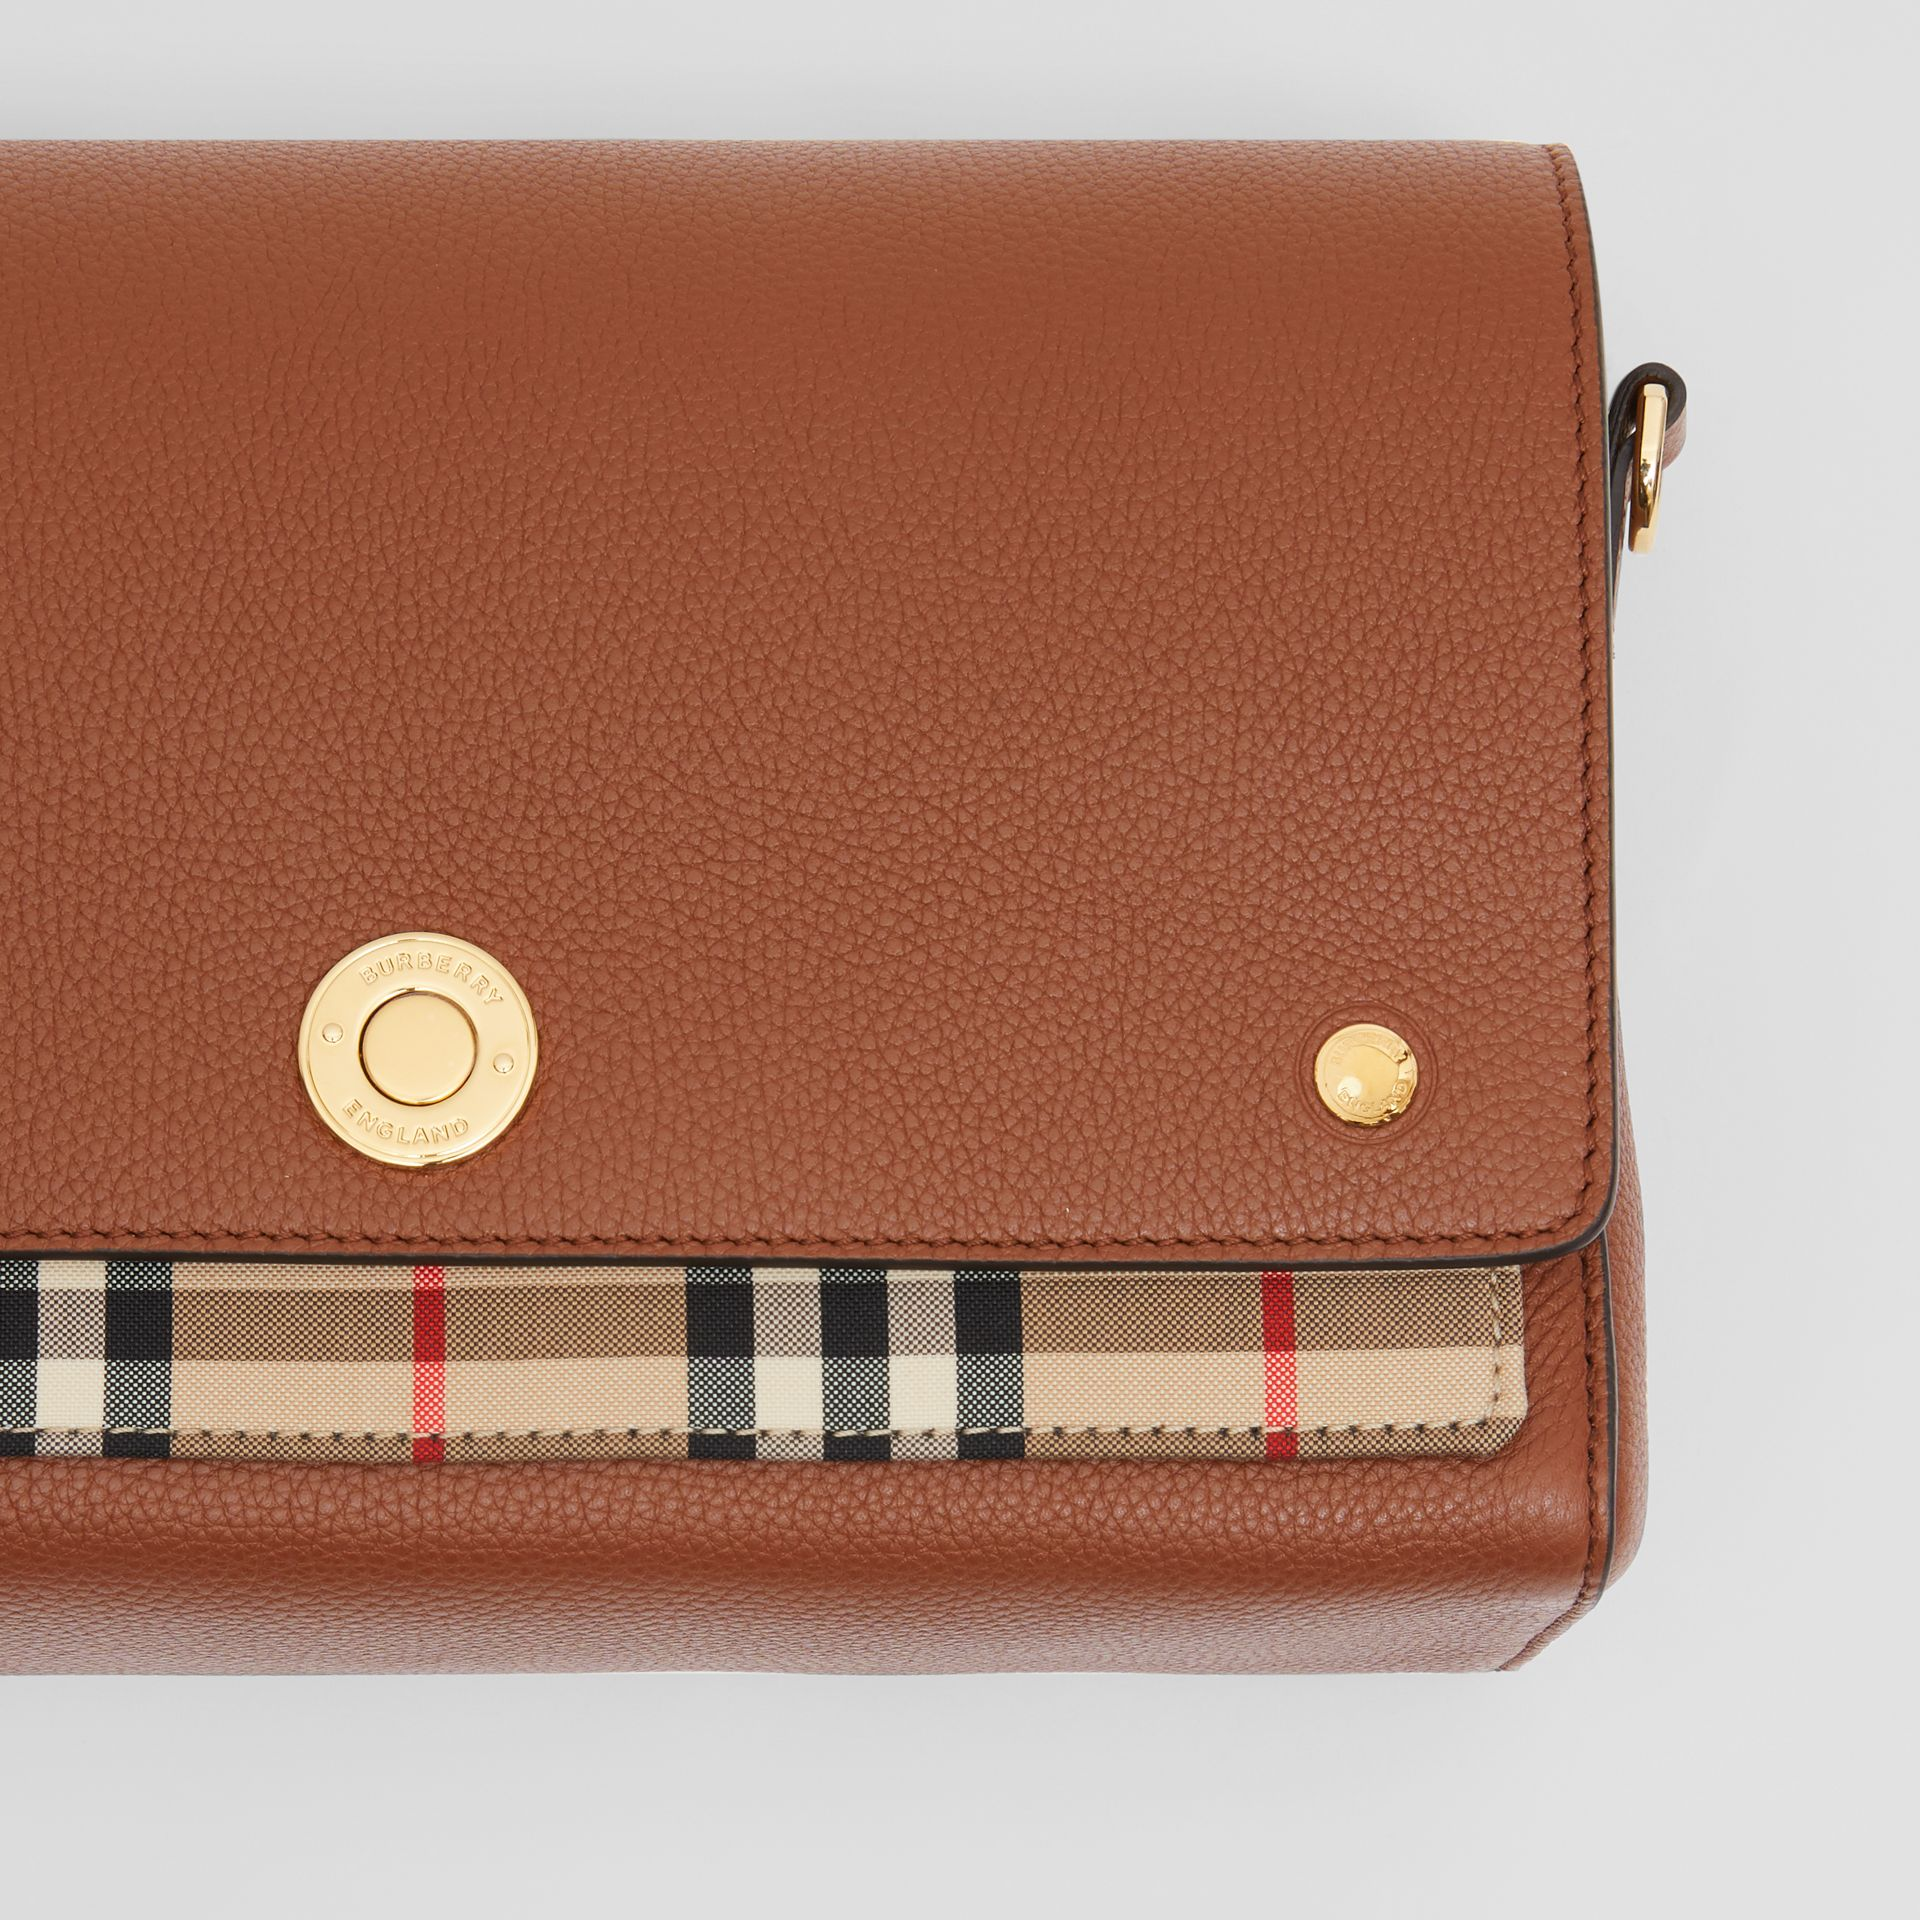 Leather and Vintage Check Note Crossbody Bag in Tan - Women | Burberry Canada - gallery image 1